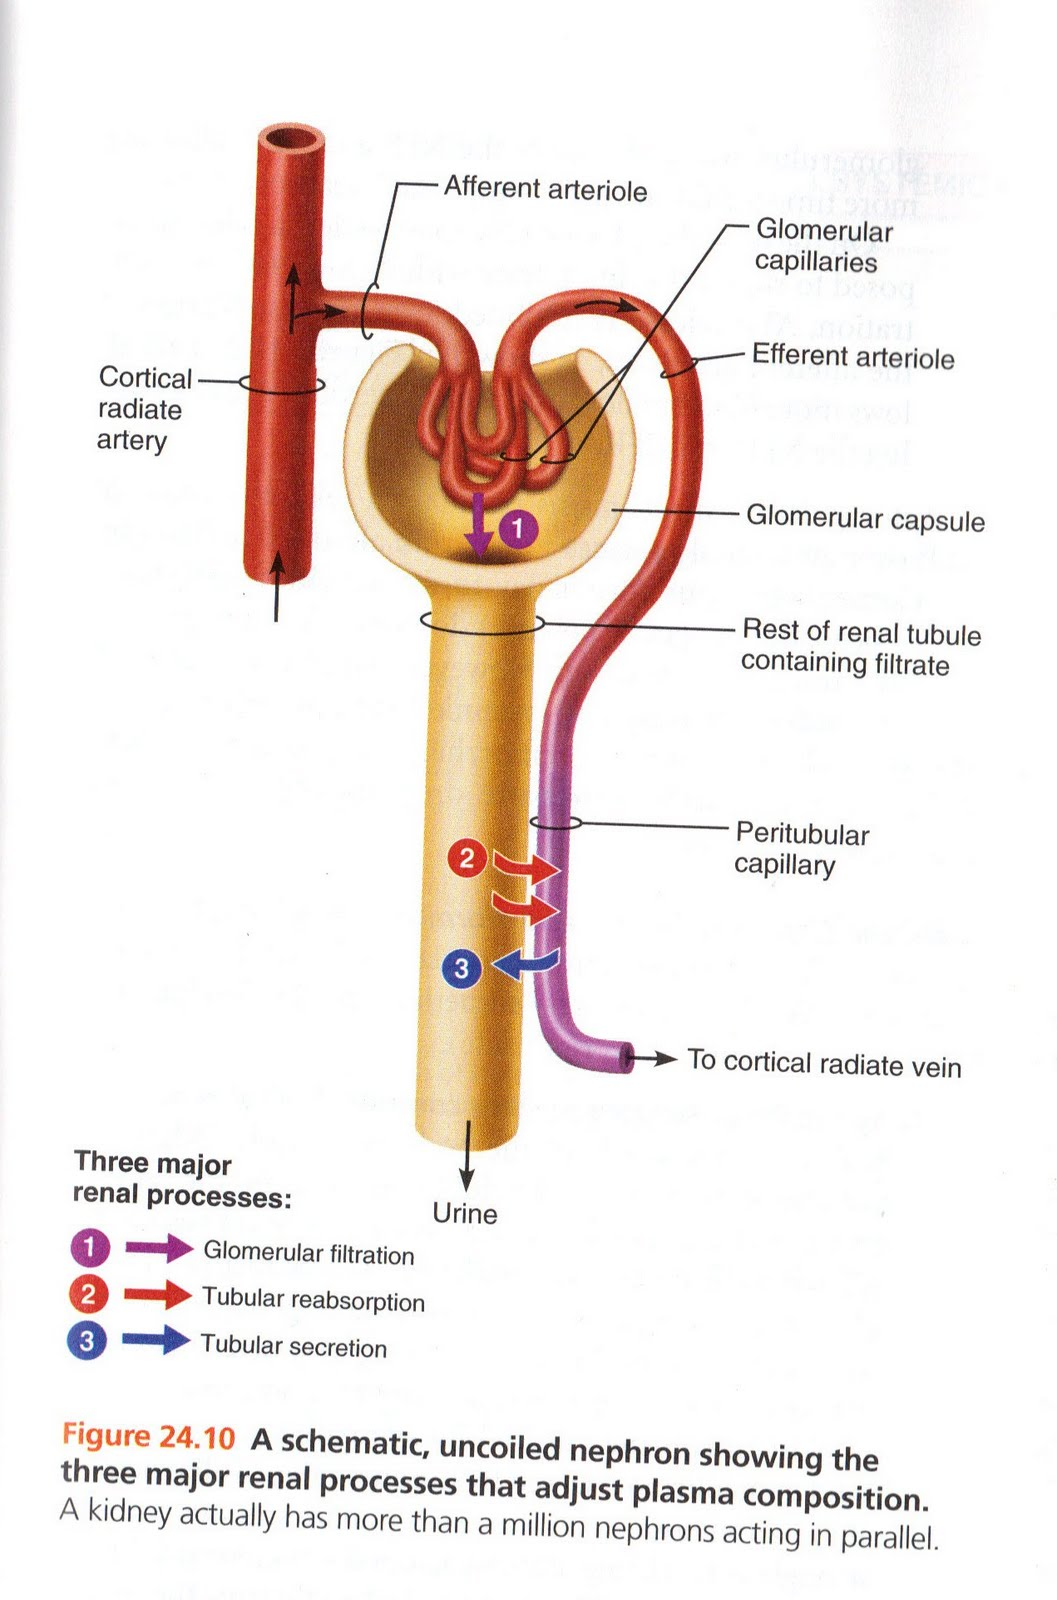 Nephron Diagram From A Textbook Plantar Fasciitis Jennifer Kersey E Portfolio Bio211 Objectives 63 And 66